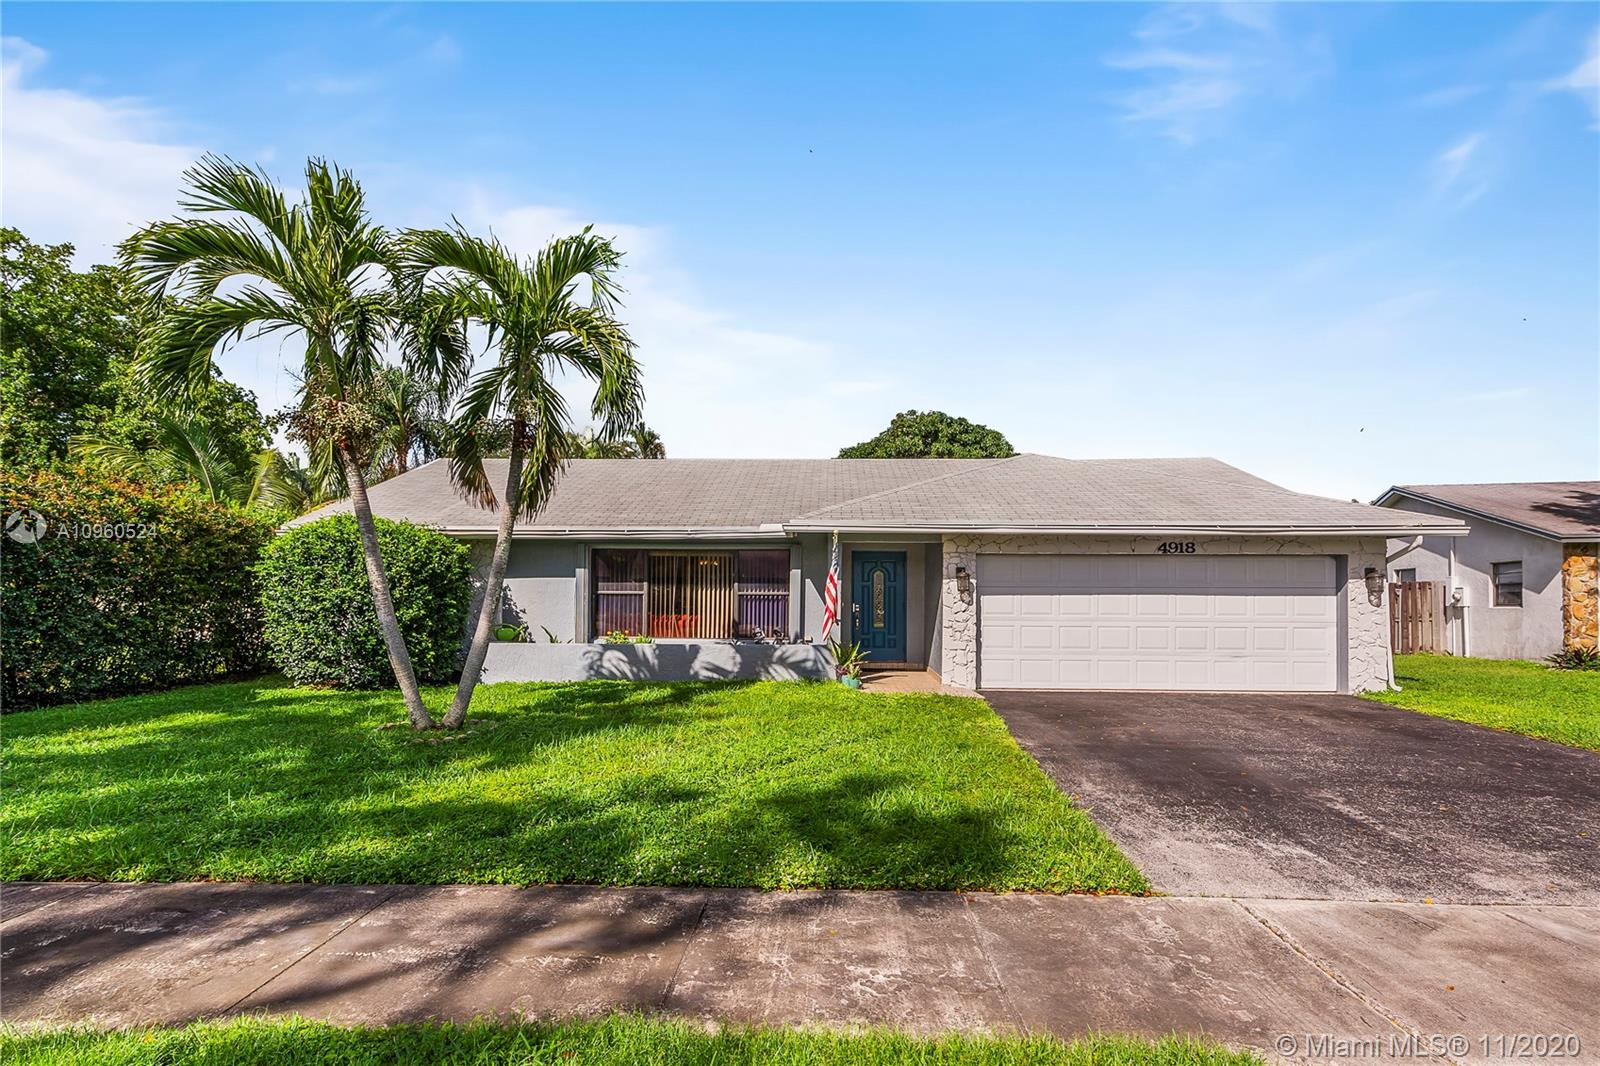 4918 SW 11th Pl, Margate, Florida 33068, 3 Bedrooms Bedrooms, 3 Rooms Rooms,2 BathroomsBathrooms,Residential,For Sale,4918 SW 11th Pl,A10960524